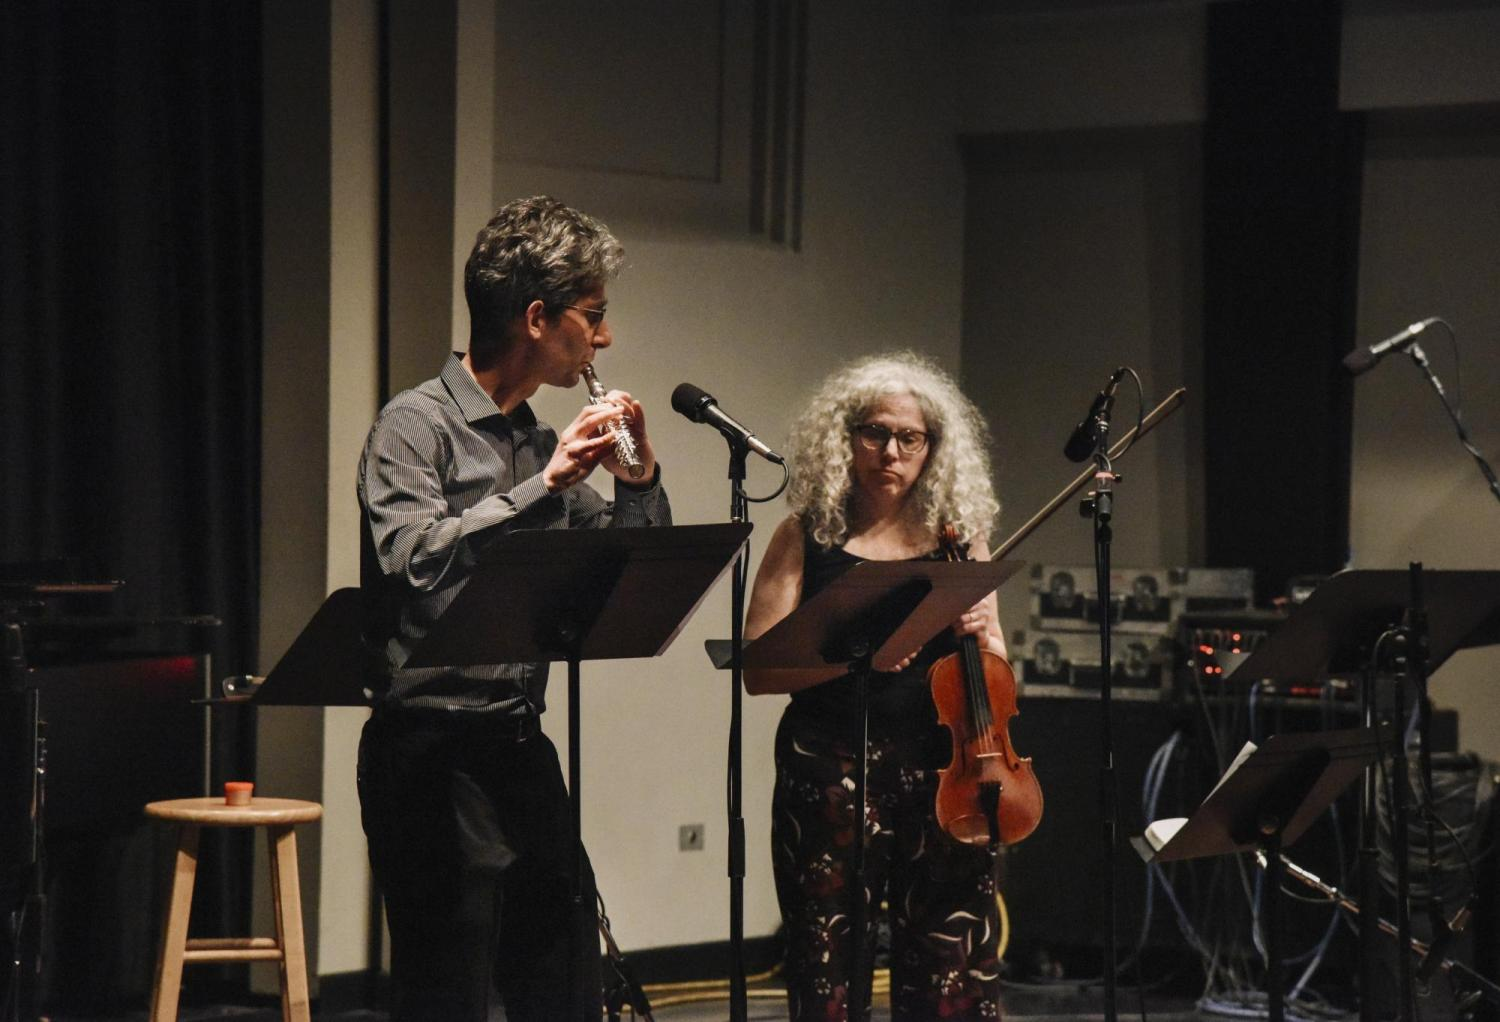 Alicia Svigals and Yonatan Malin performing on stage